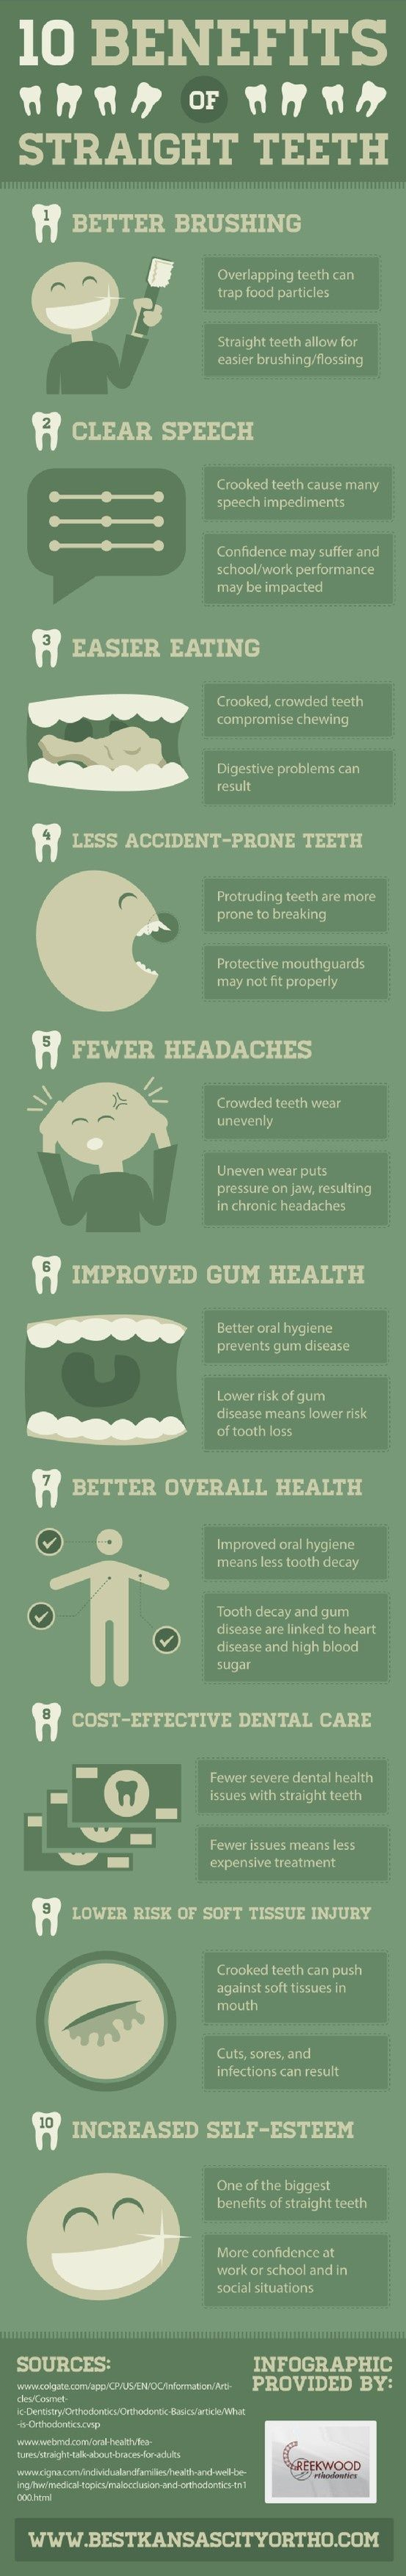 10 Benefits of Straight Teeth. All About Kids Pediatric Dentistry | Stamford, CT | (203) 323-5439 | http://allaboutkidsteeth.com